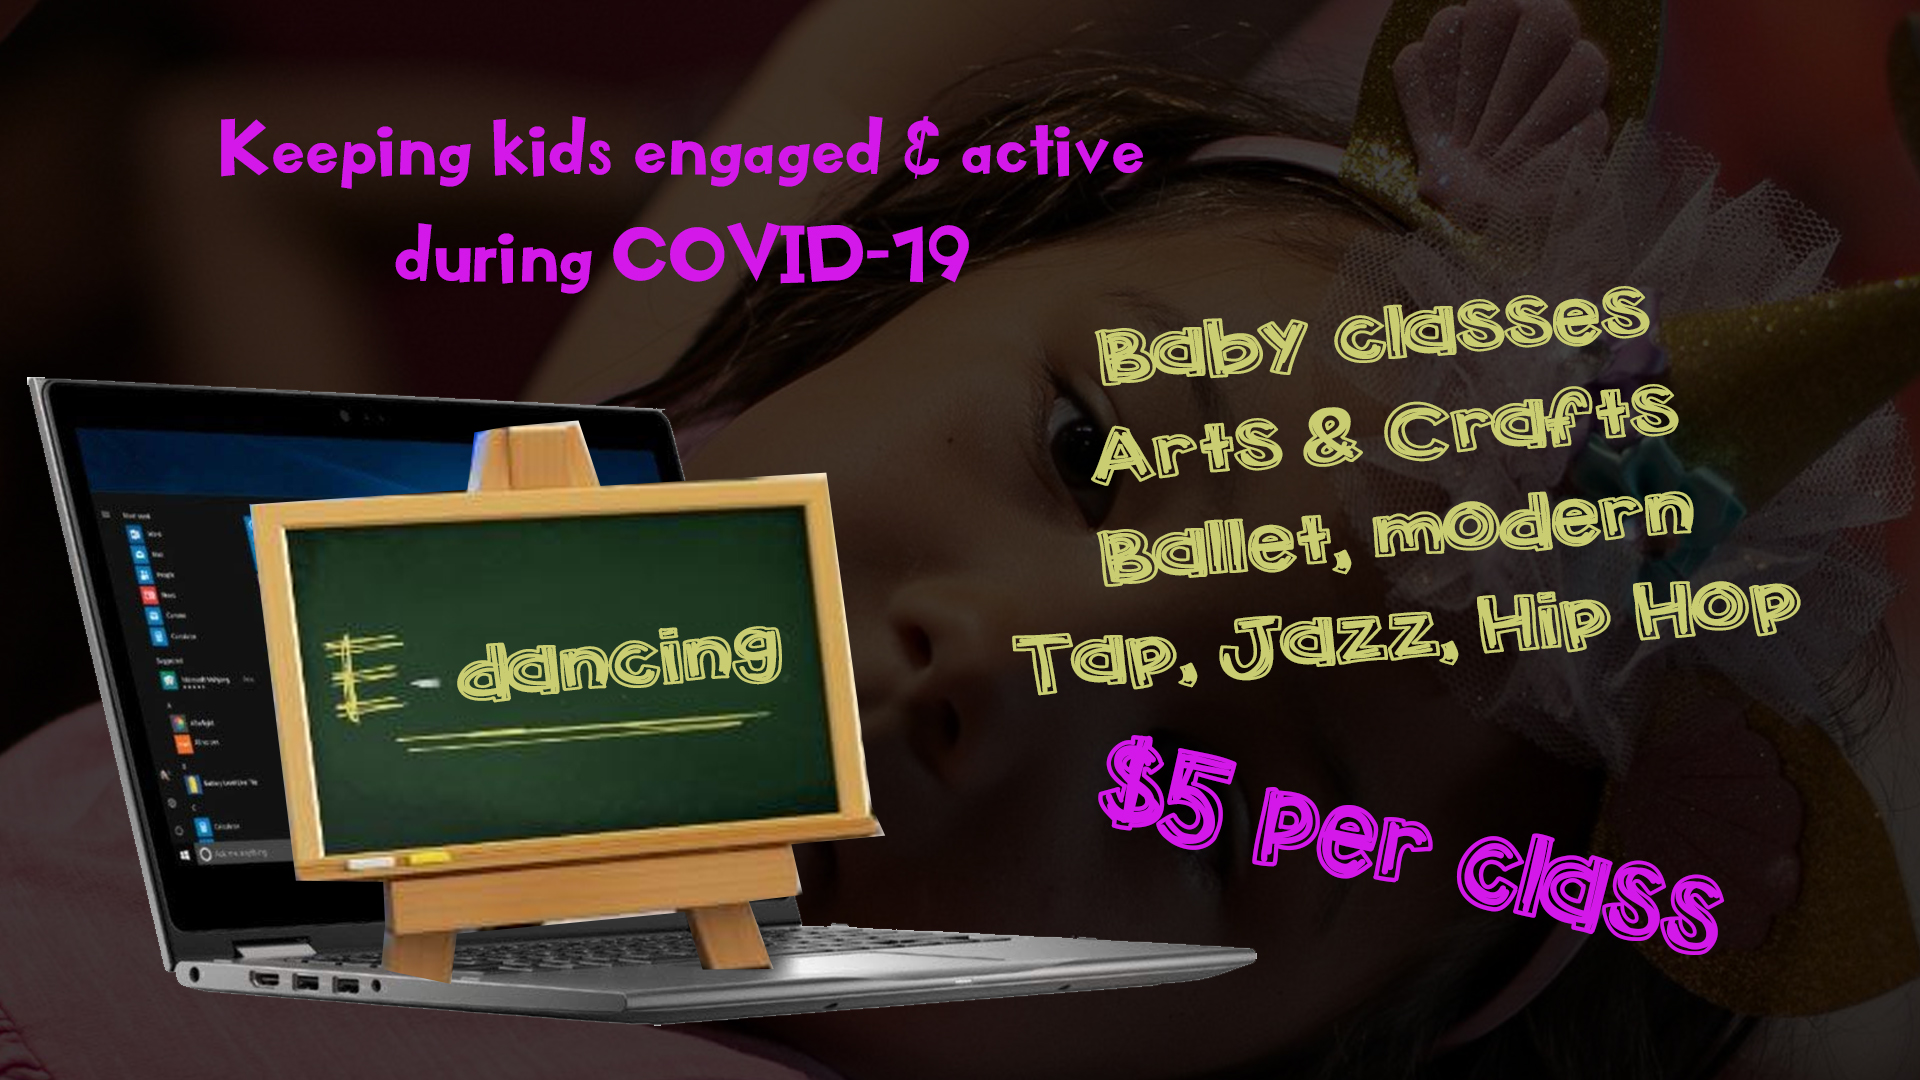 Live online dance lessons for kids during the COVID-19 (coronavirus) outbreak: ballet, tap, jazz, modern, hip hop, latin, storytime and more.